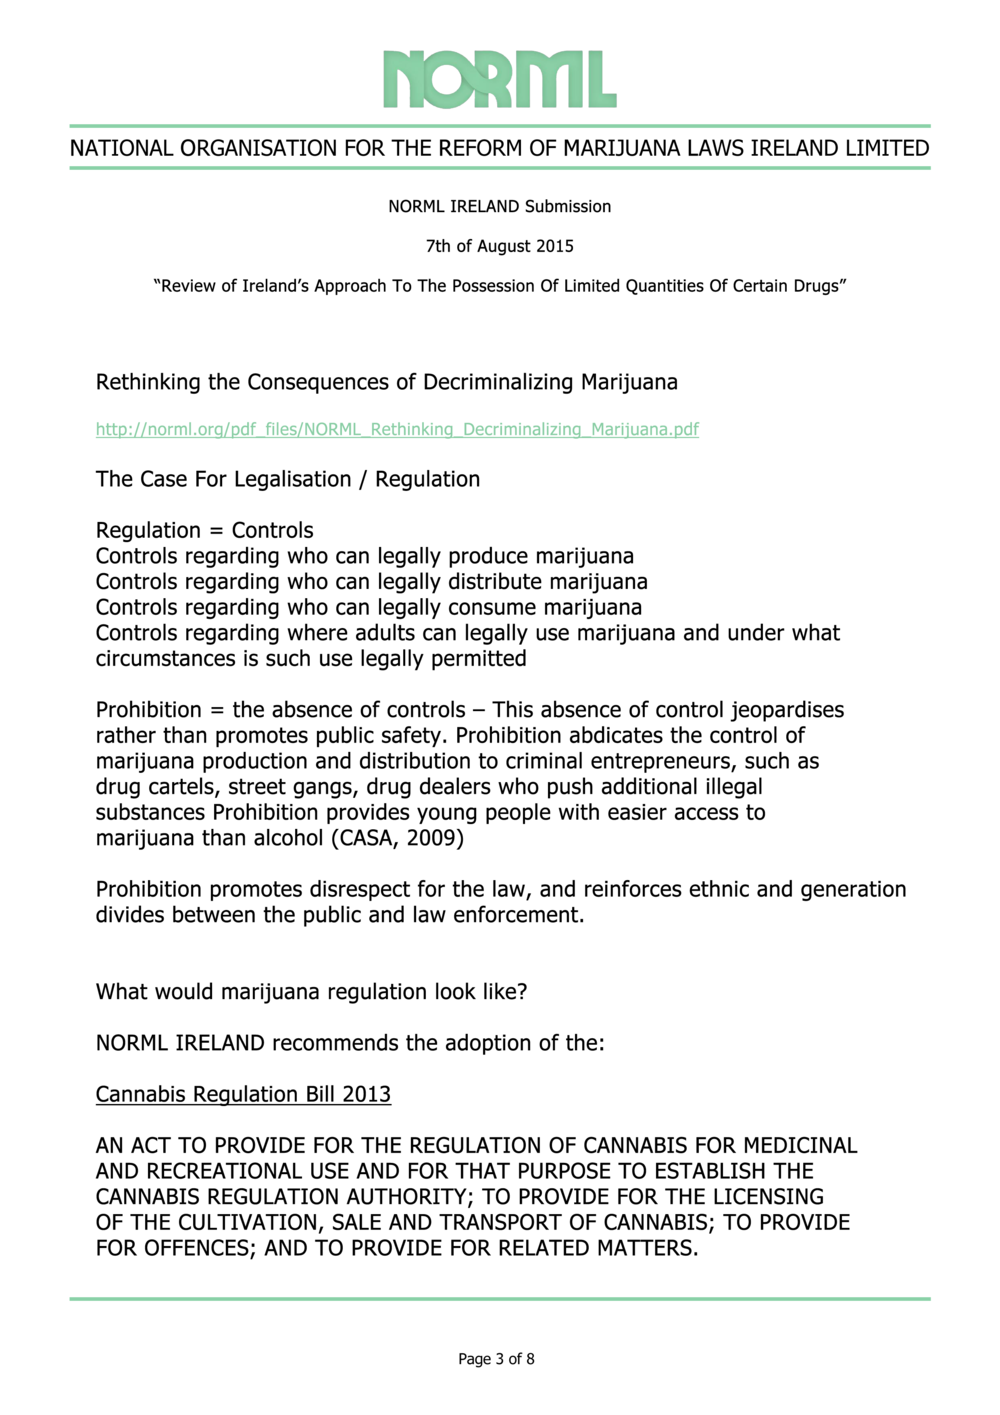 NORML Ireland Submission Page 3 of 8.png